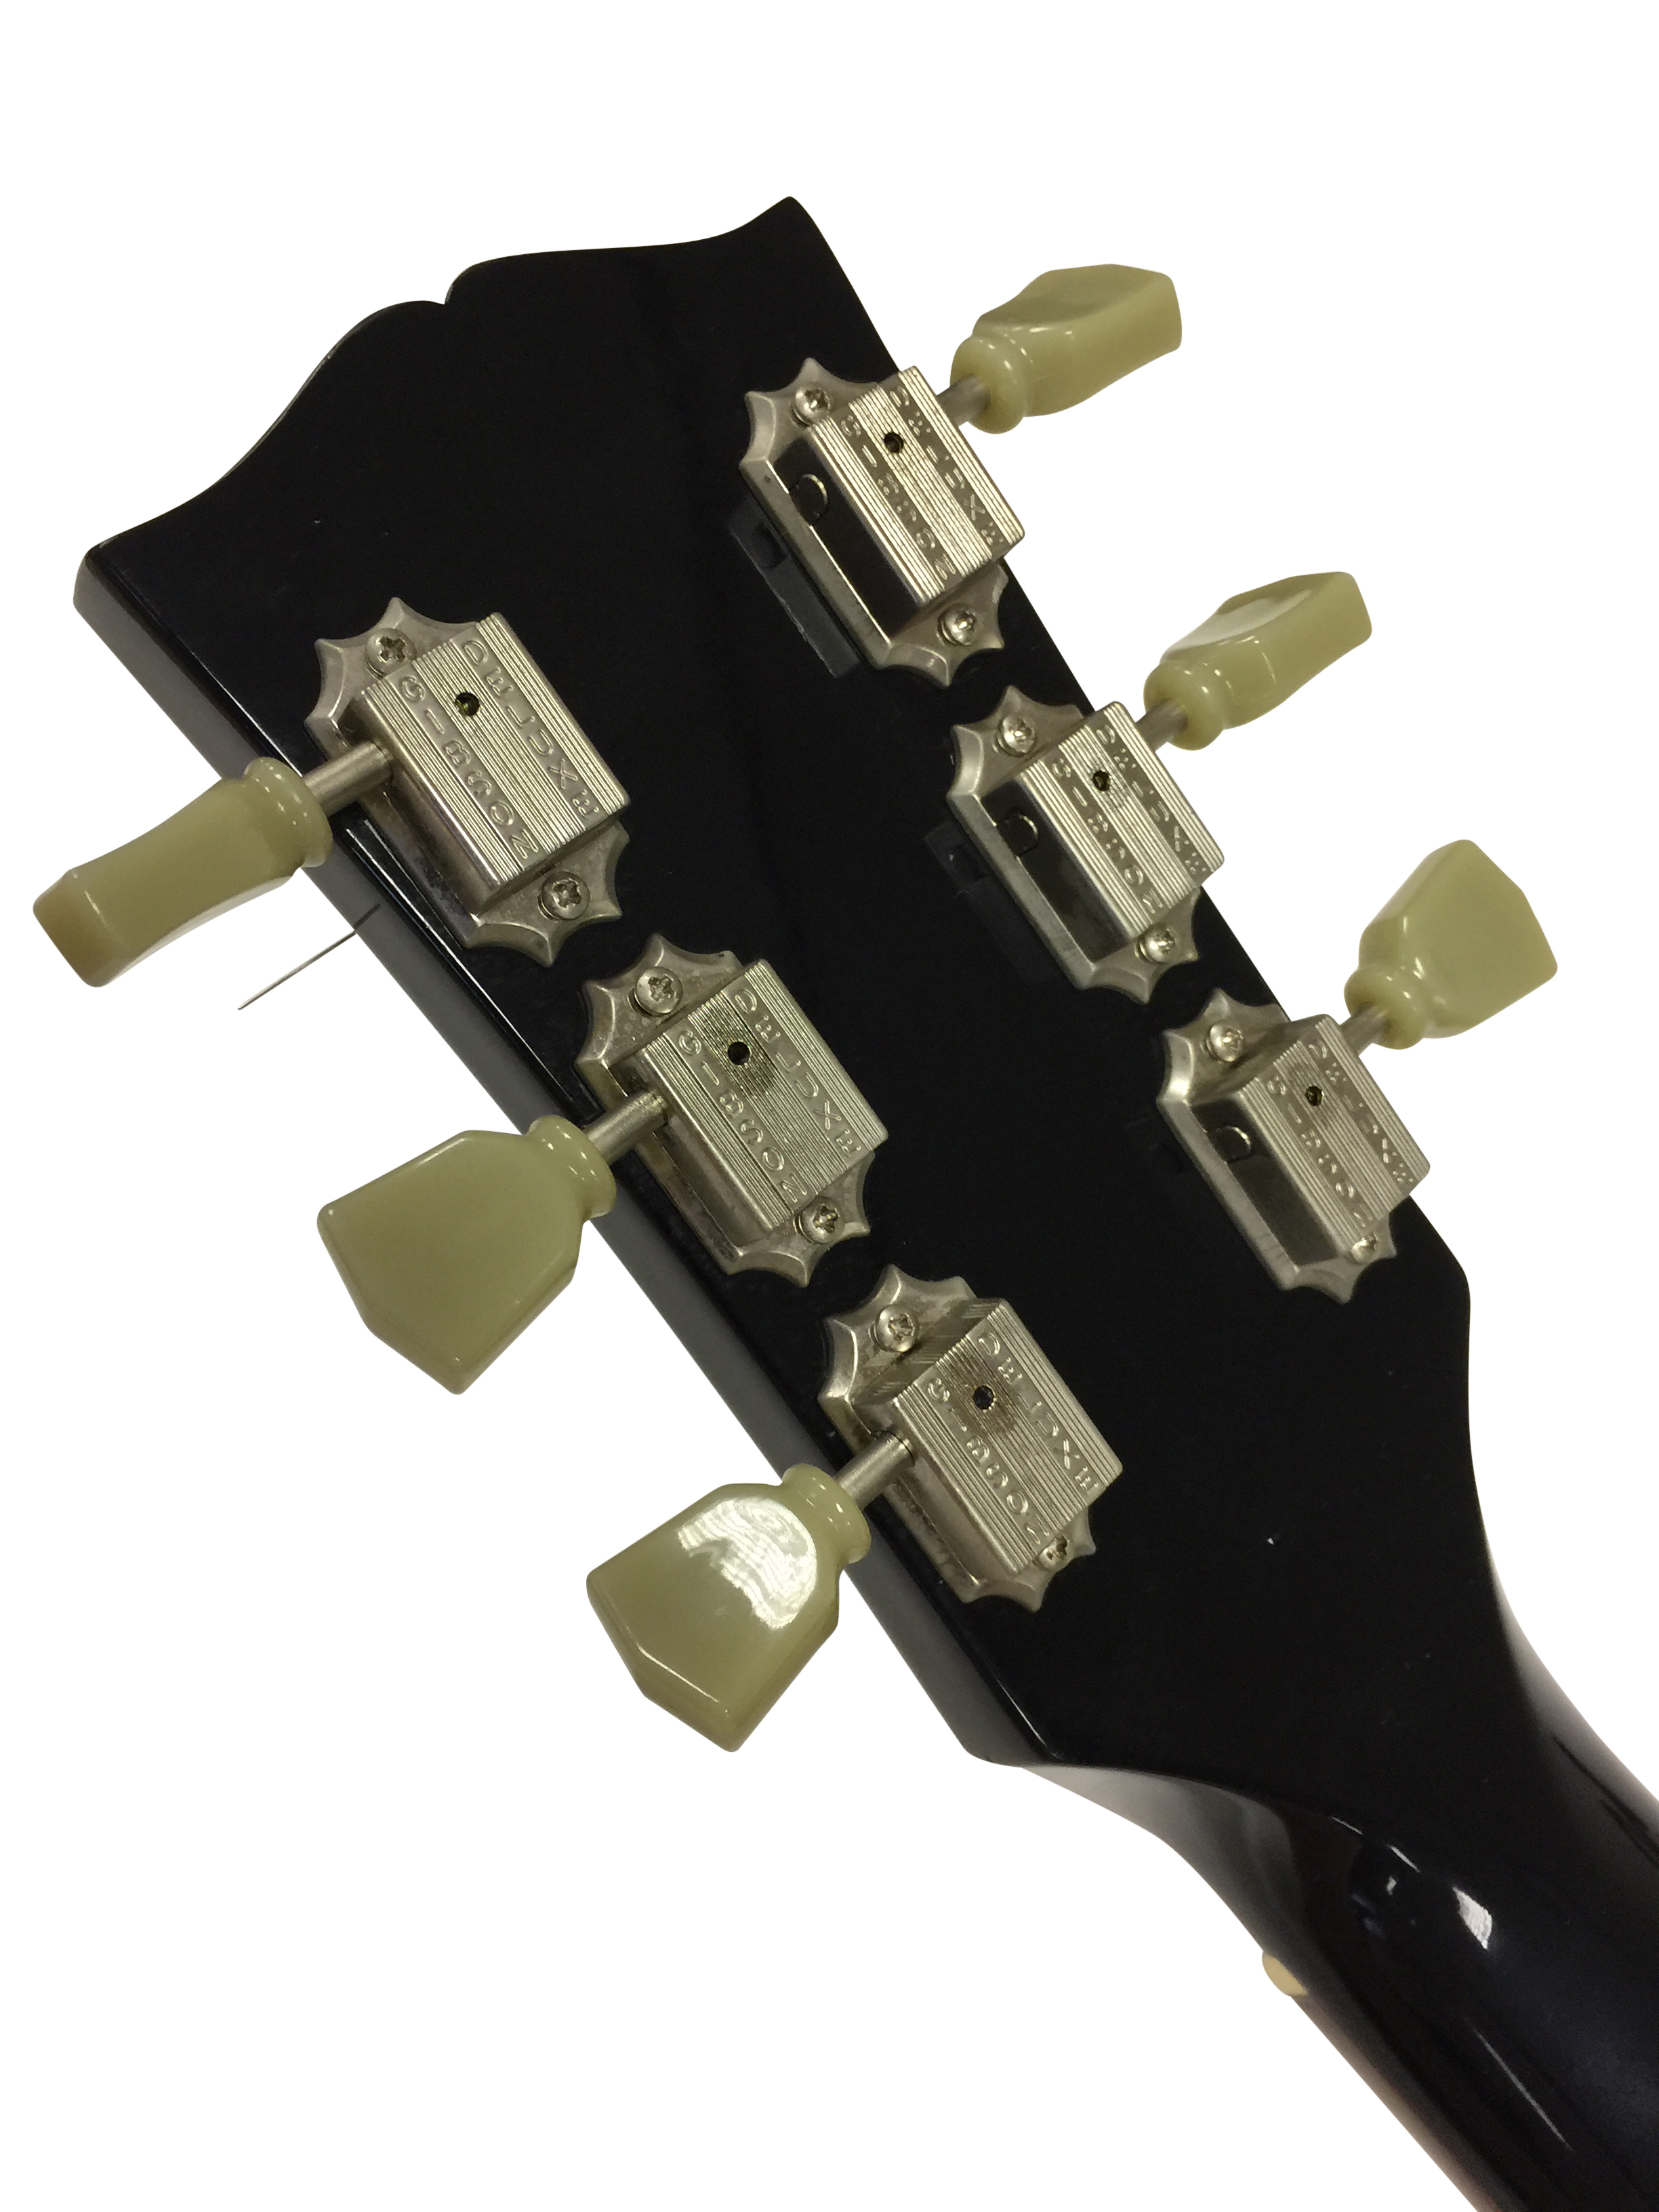 Lot 13 - GIBSON SG BLACK ELECTRIC GUITAR. A 2004 Gibson SG Standard with hard case. Very good condition.